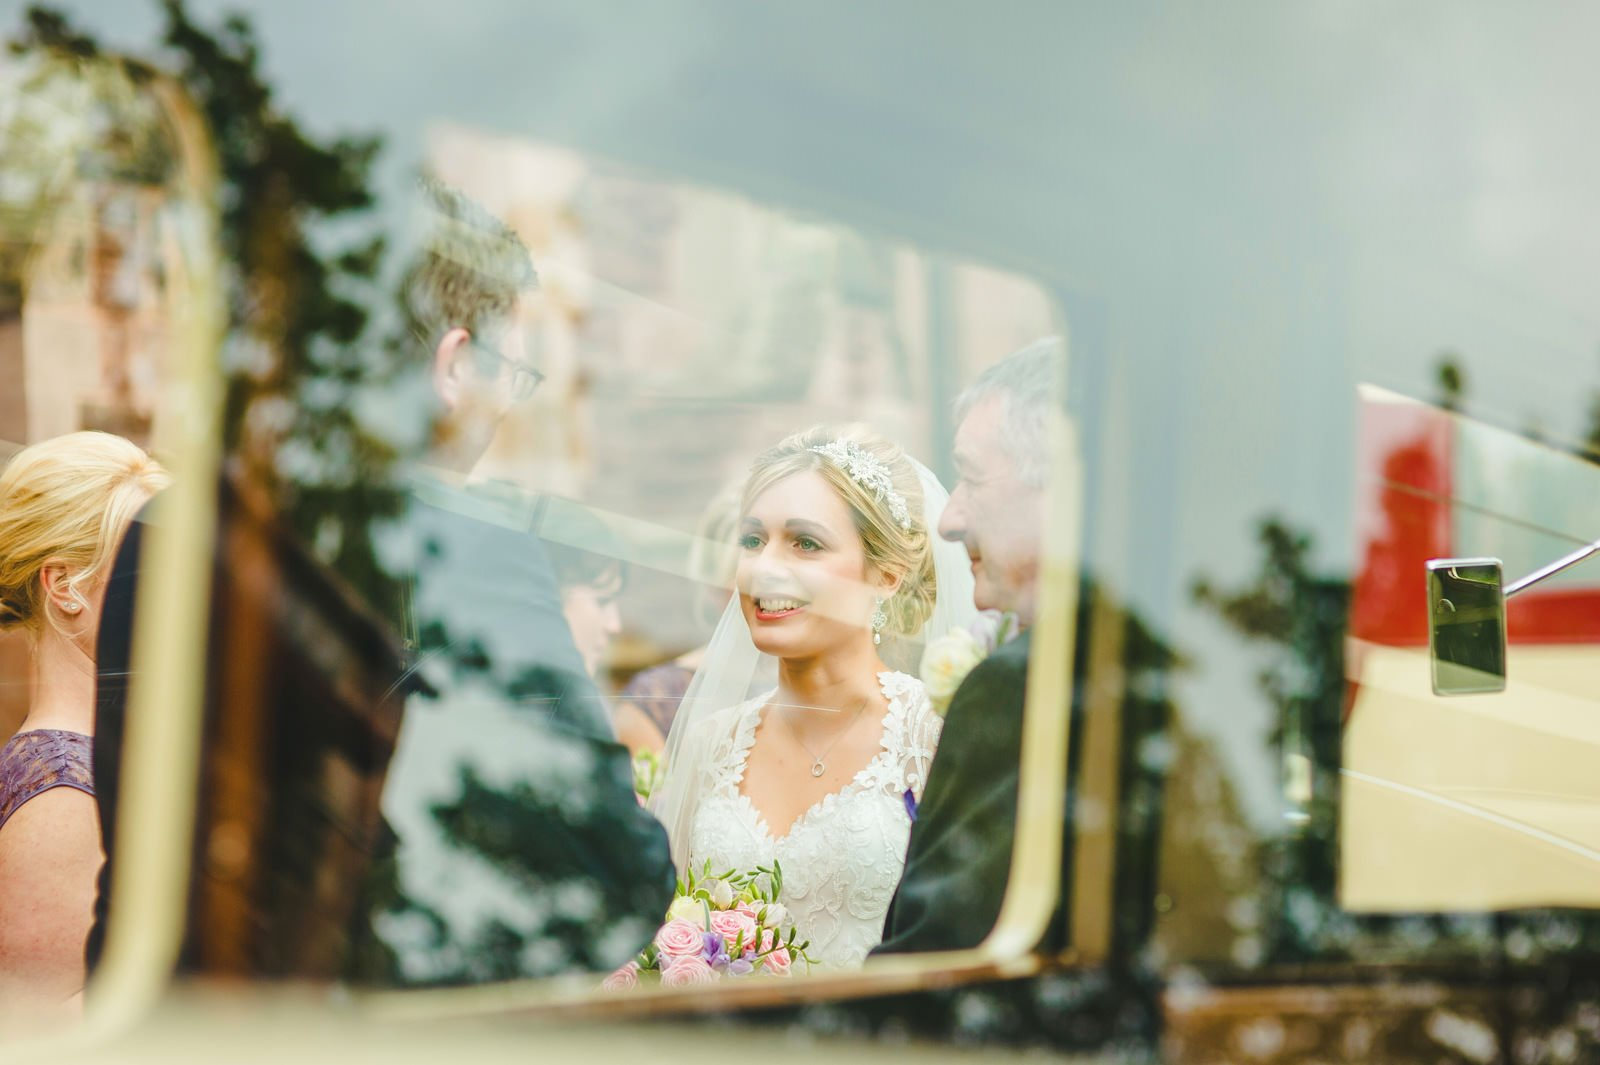 millers of netley wedding 22 - Millers Of Netley wedding, Dorrington, Shrewsbury | Emma + Ben